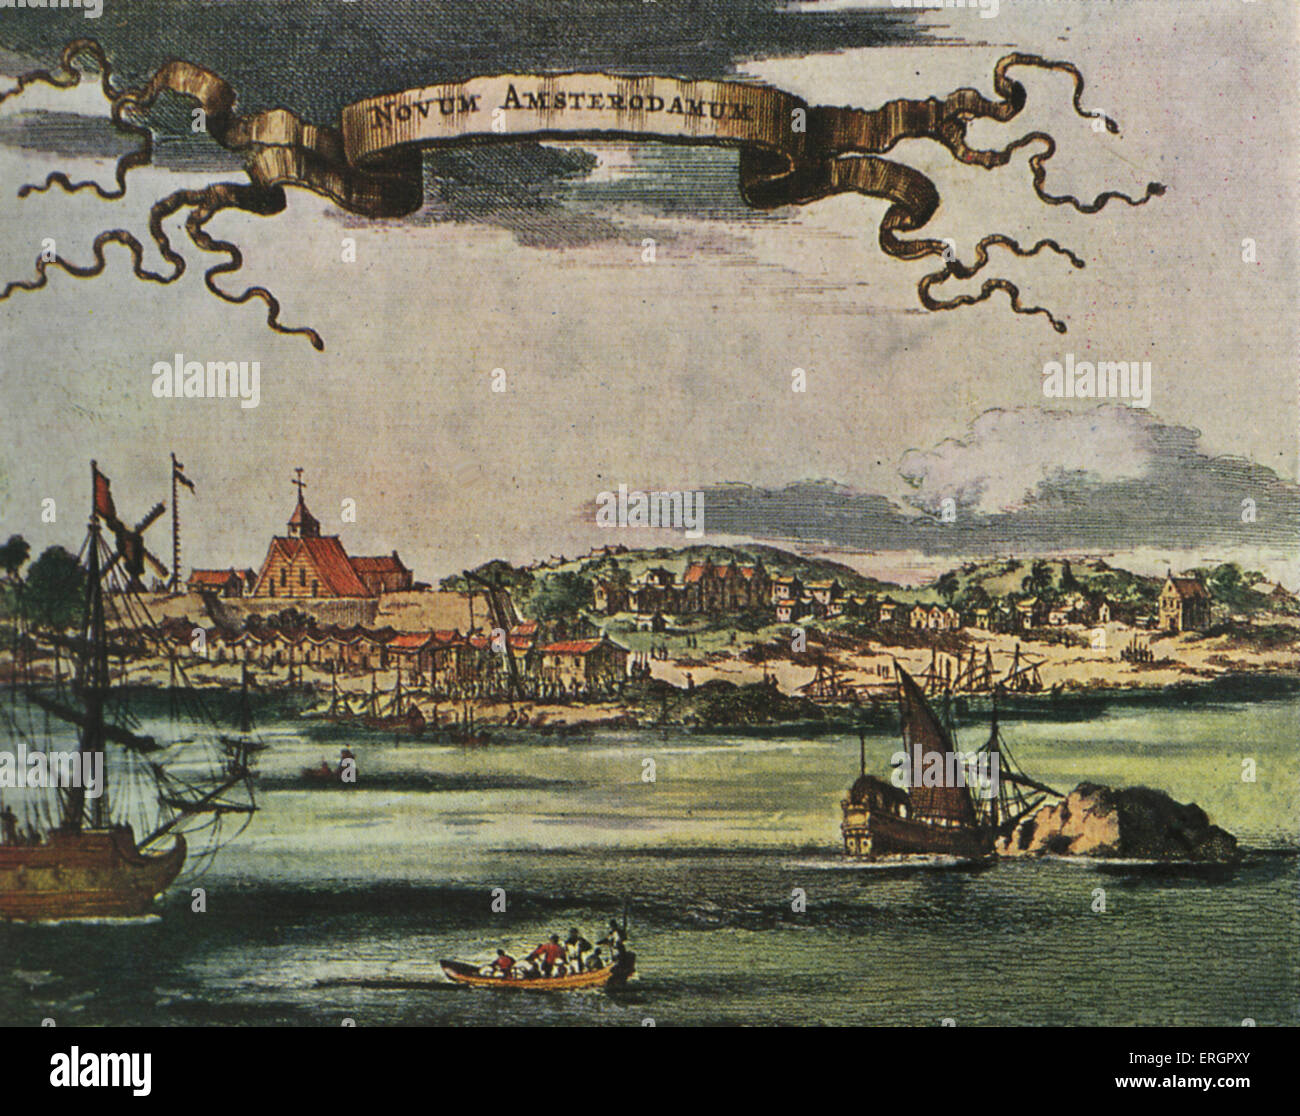 New Amsterdam, 17th century view. Dutch settlement established at the southern tip of Manhattan Island, United States. - Stock Image